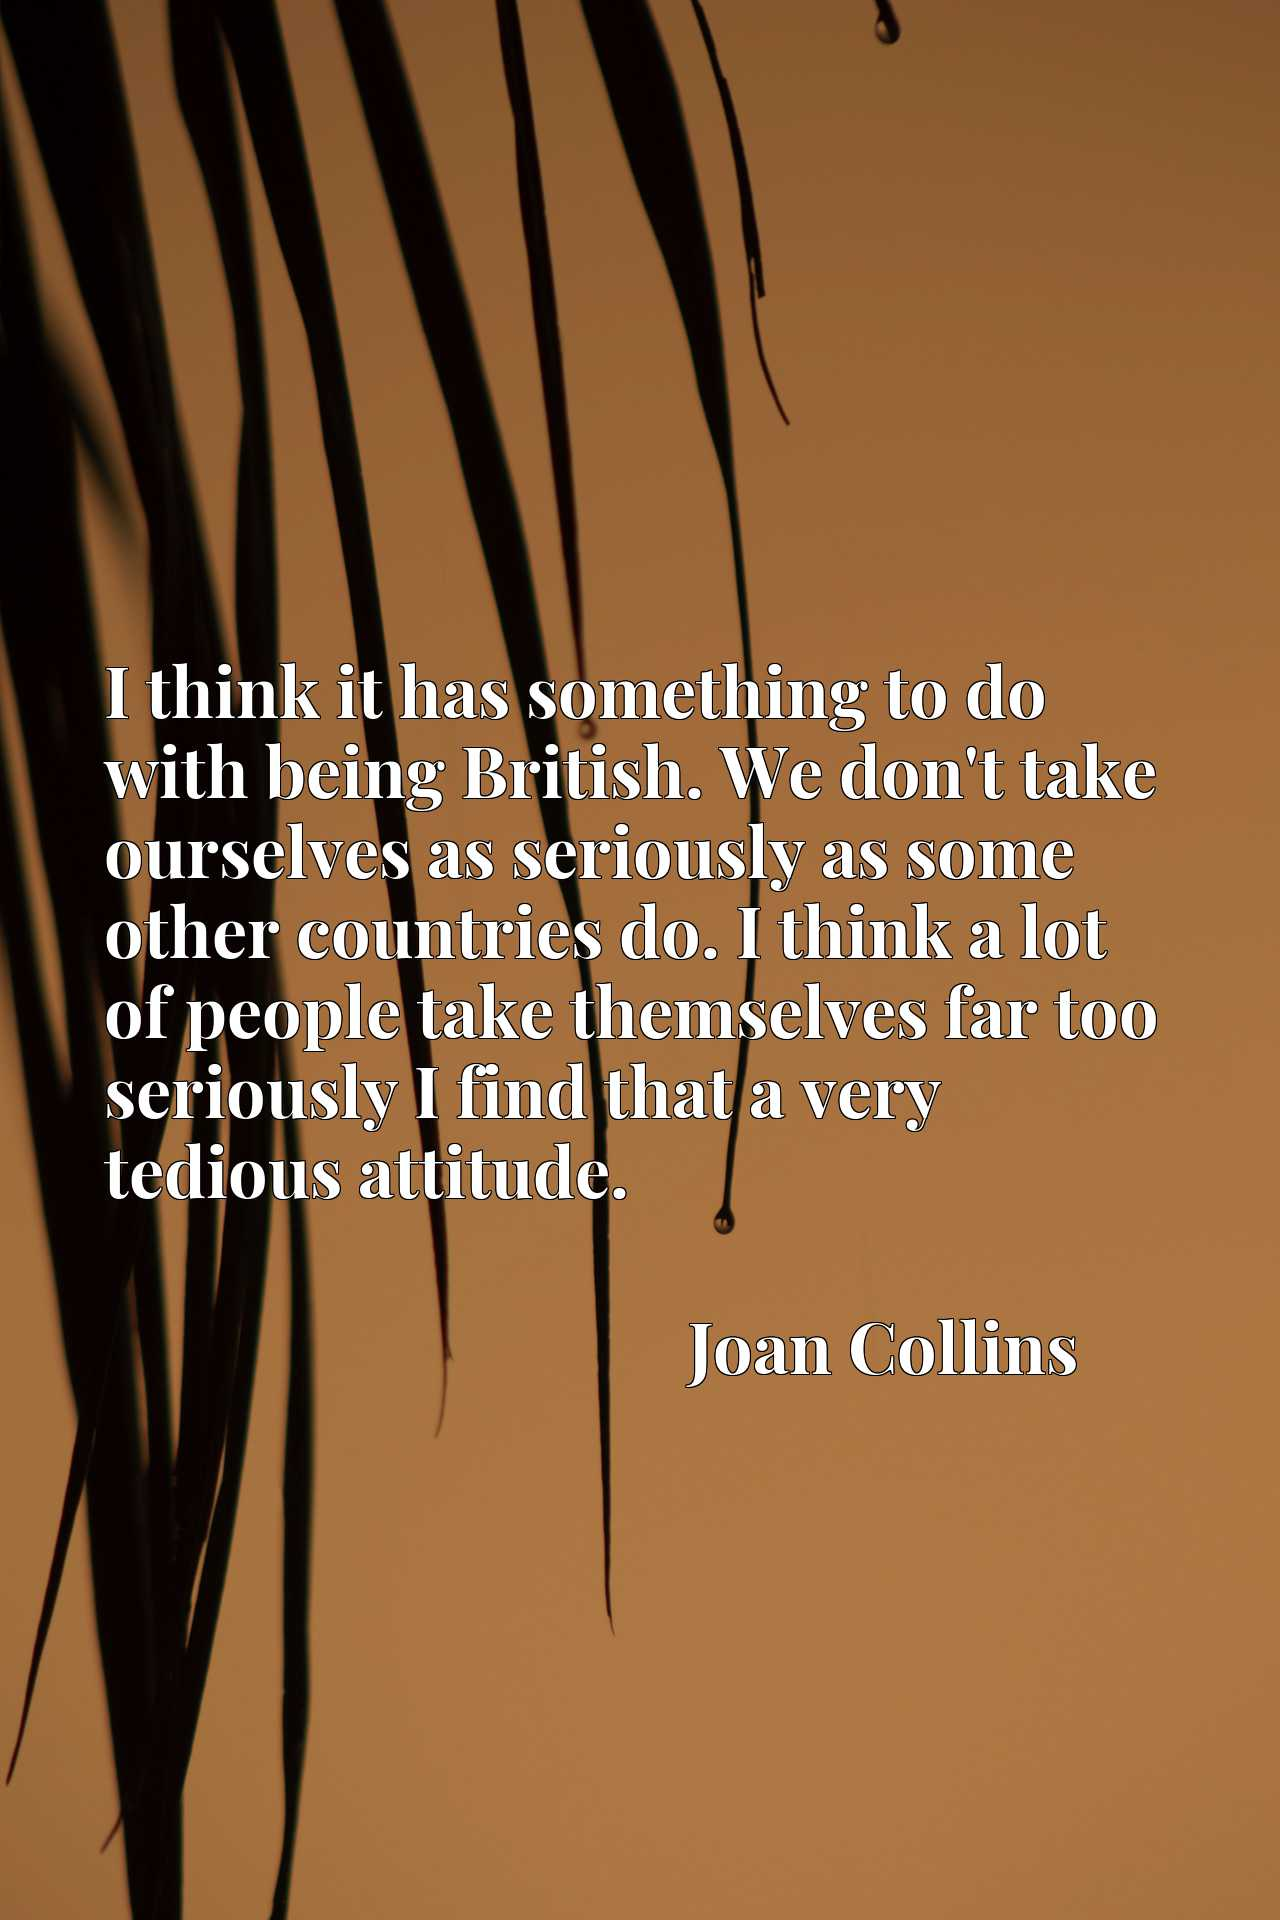 I think it has something to do with being British. We don't take ourselves as seriously as some other countries do. I think a lot of people take themselves far too seriously I find that a very tedious attitude.